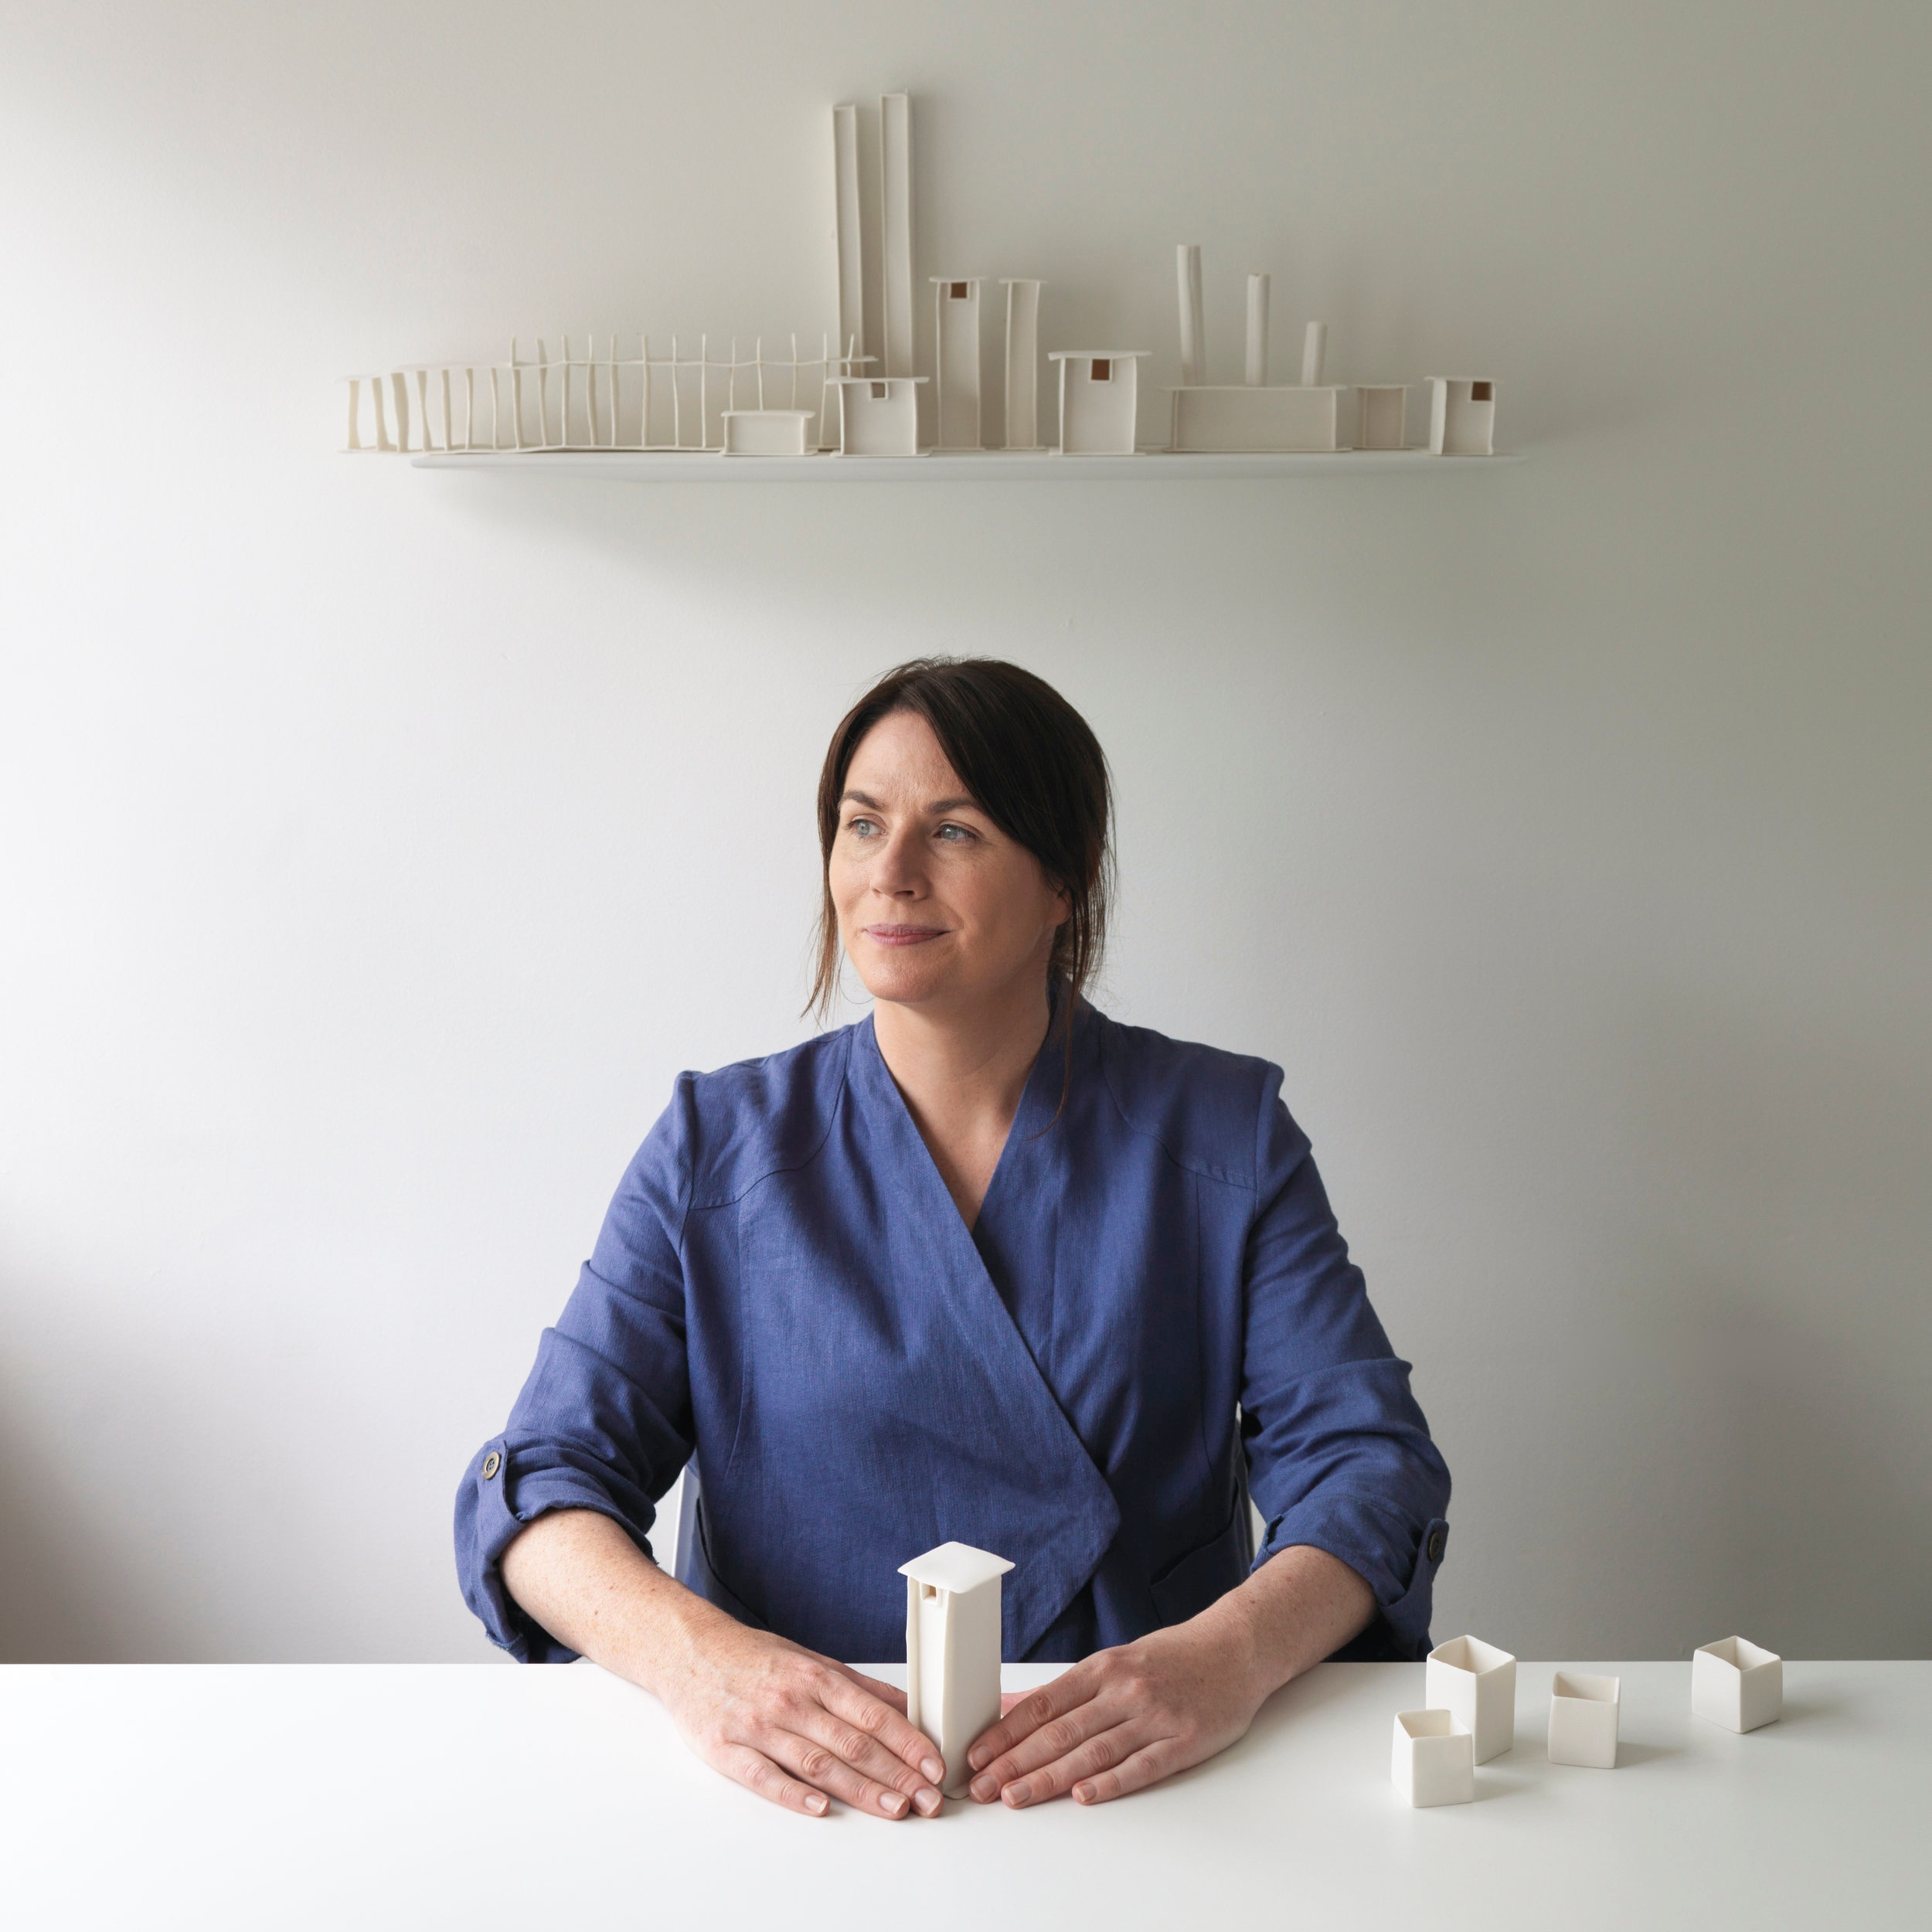 250: Ireland Week: Isobel Egan on building with paper-thin porcelain slabs